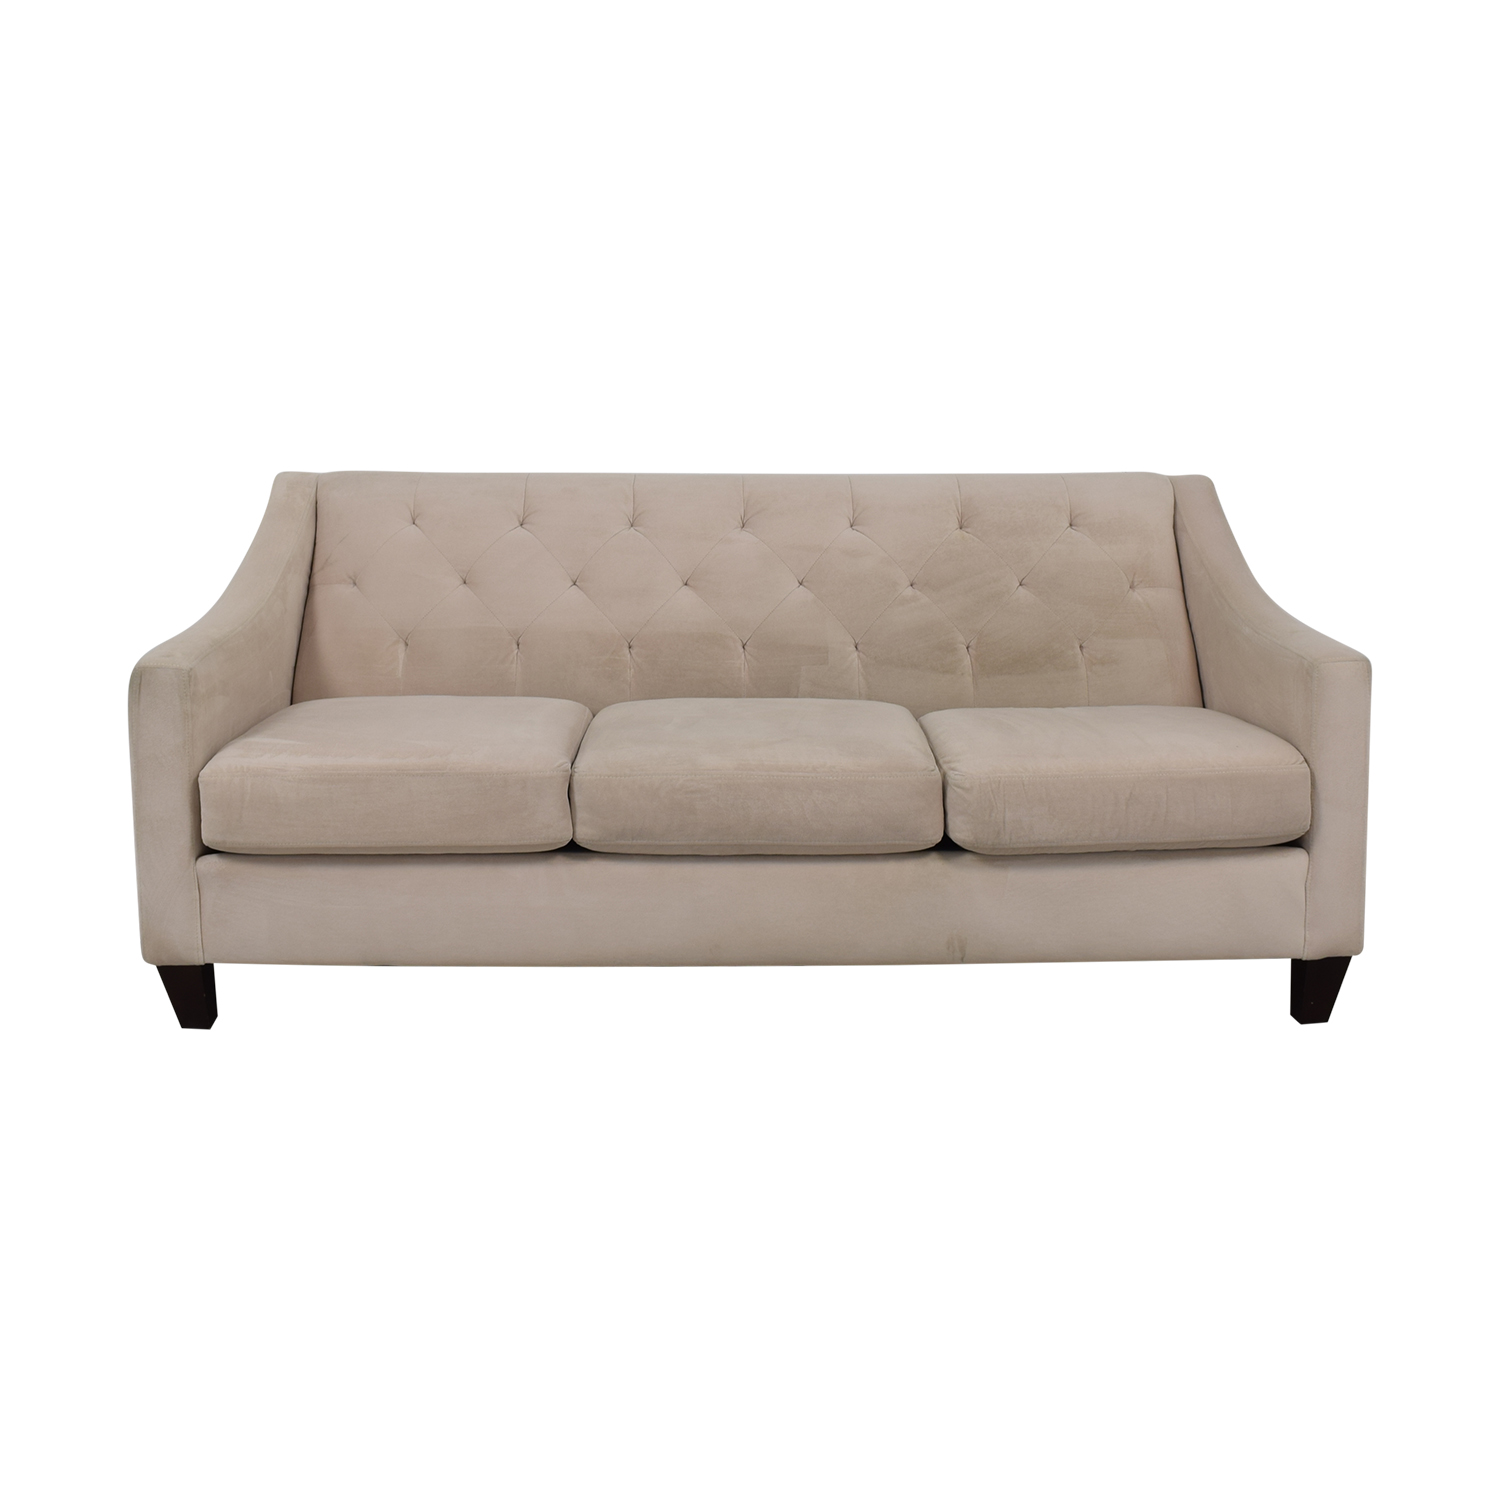 Max Home Furniture Max Home Furniture Tufted Suede Three-Cushion Sofa nyc